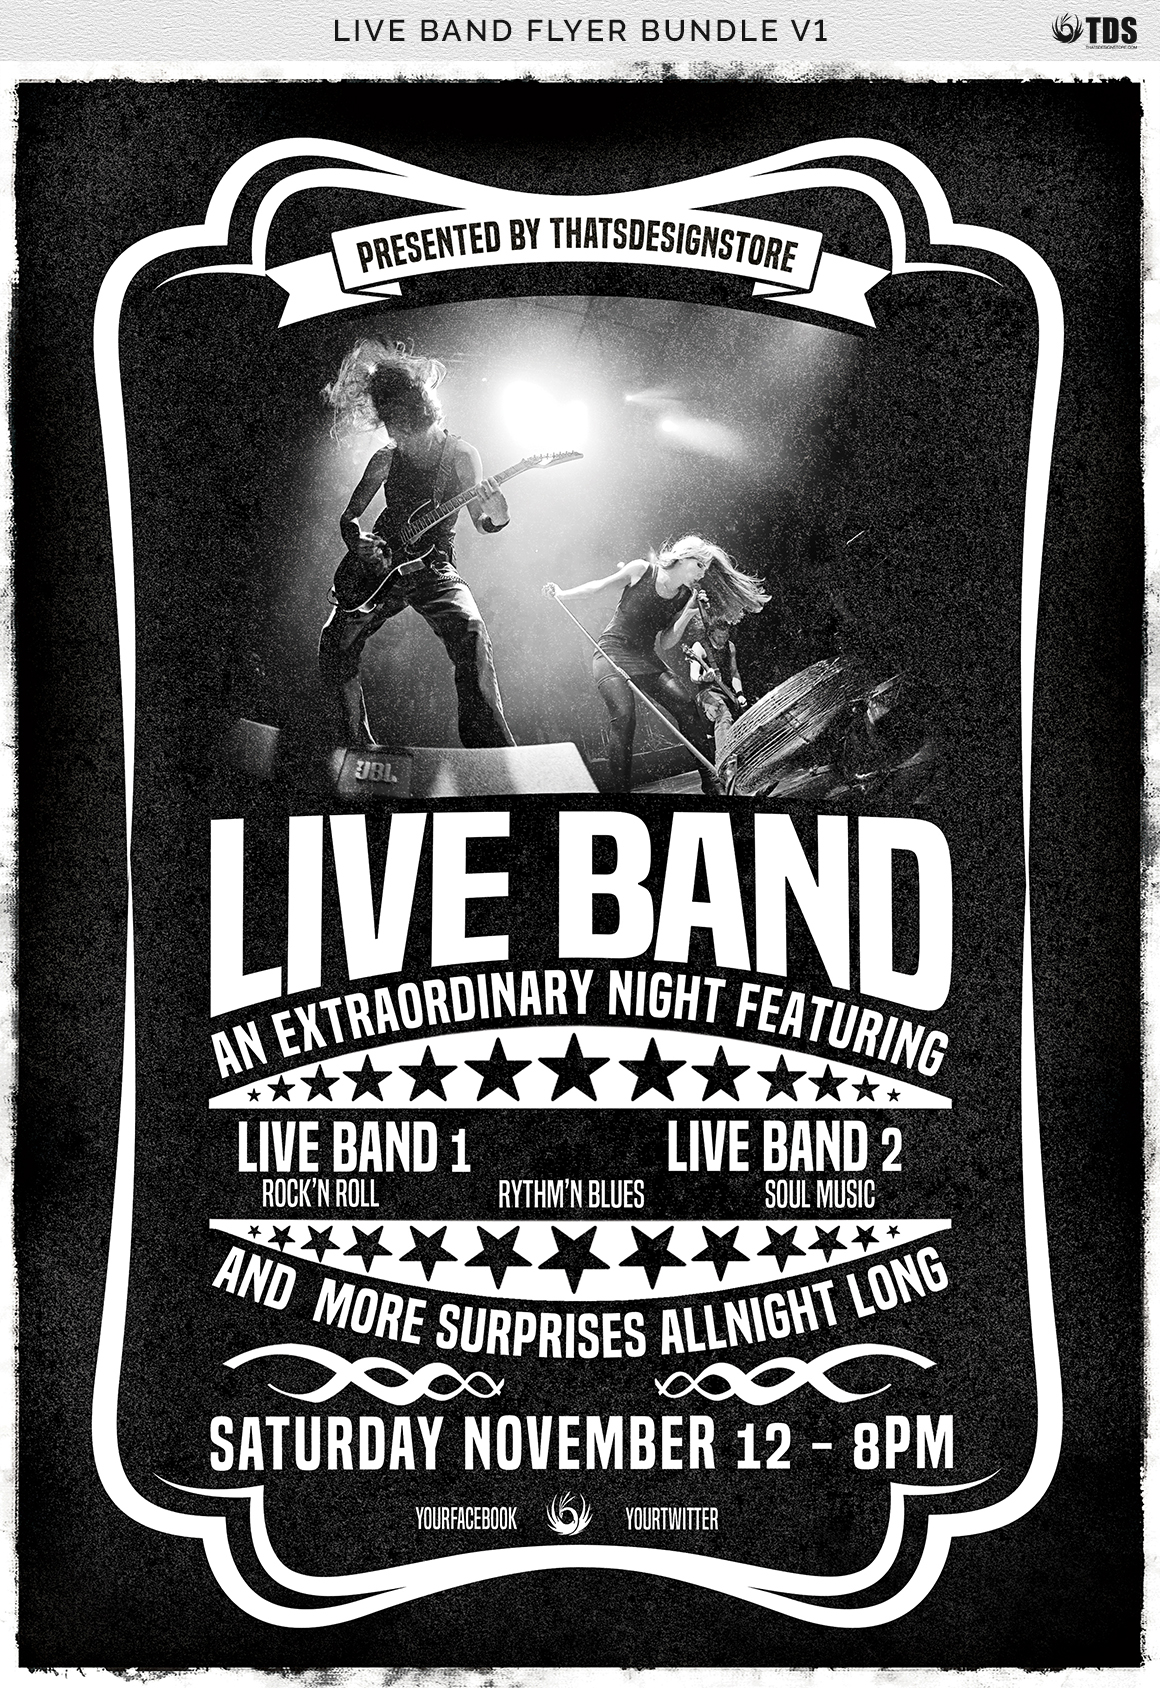 Live Band Flyer Bundle V1 example image 7